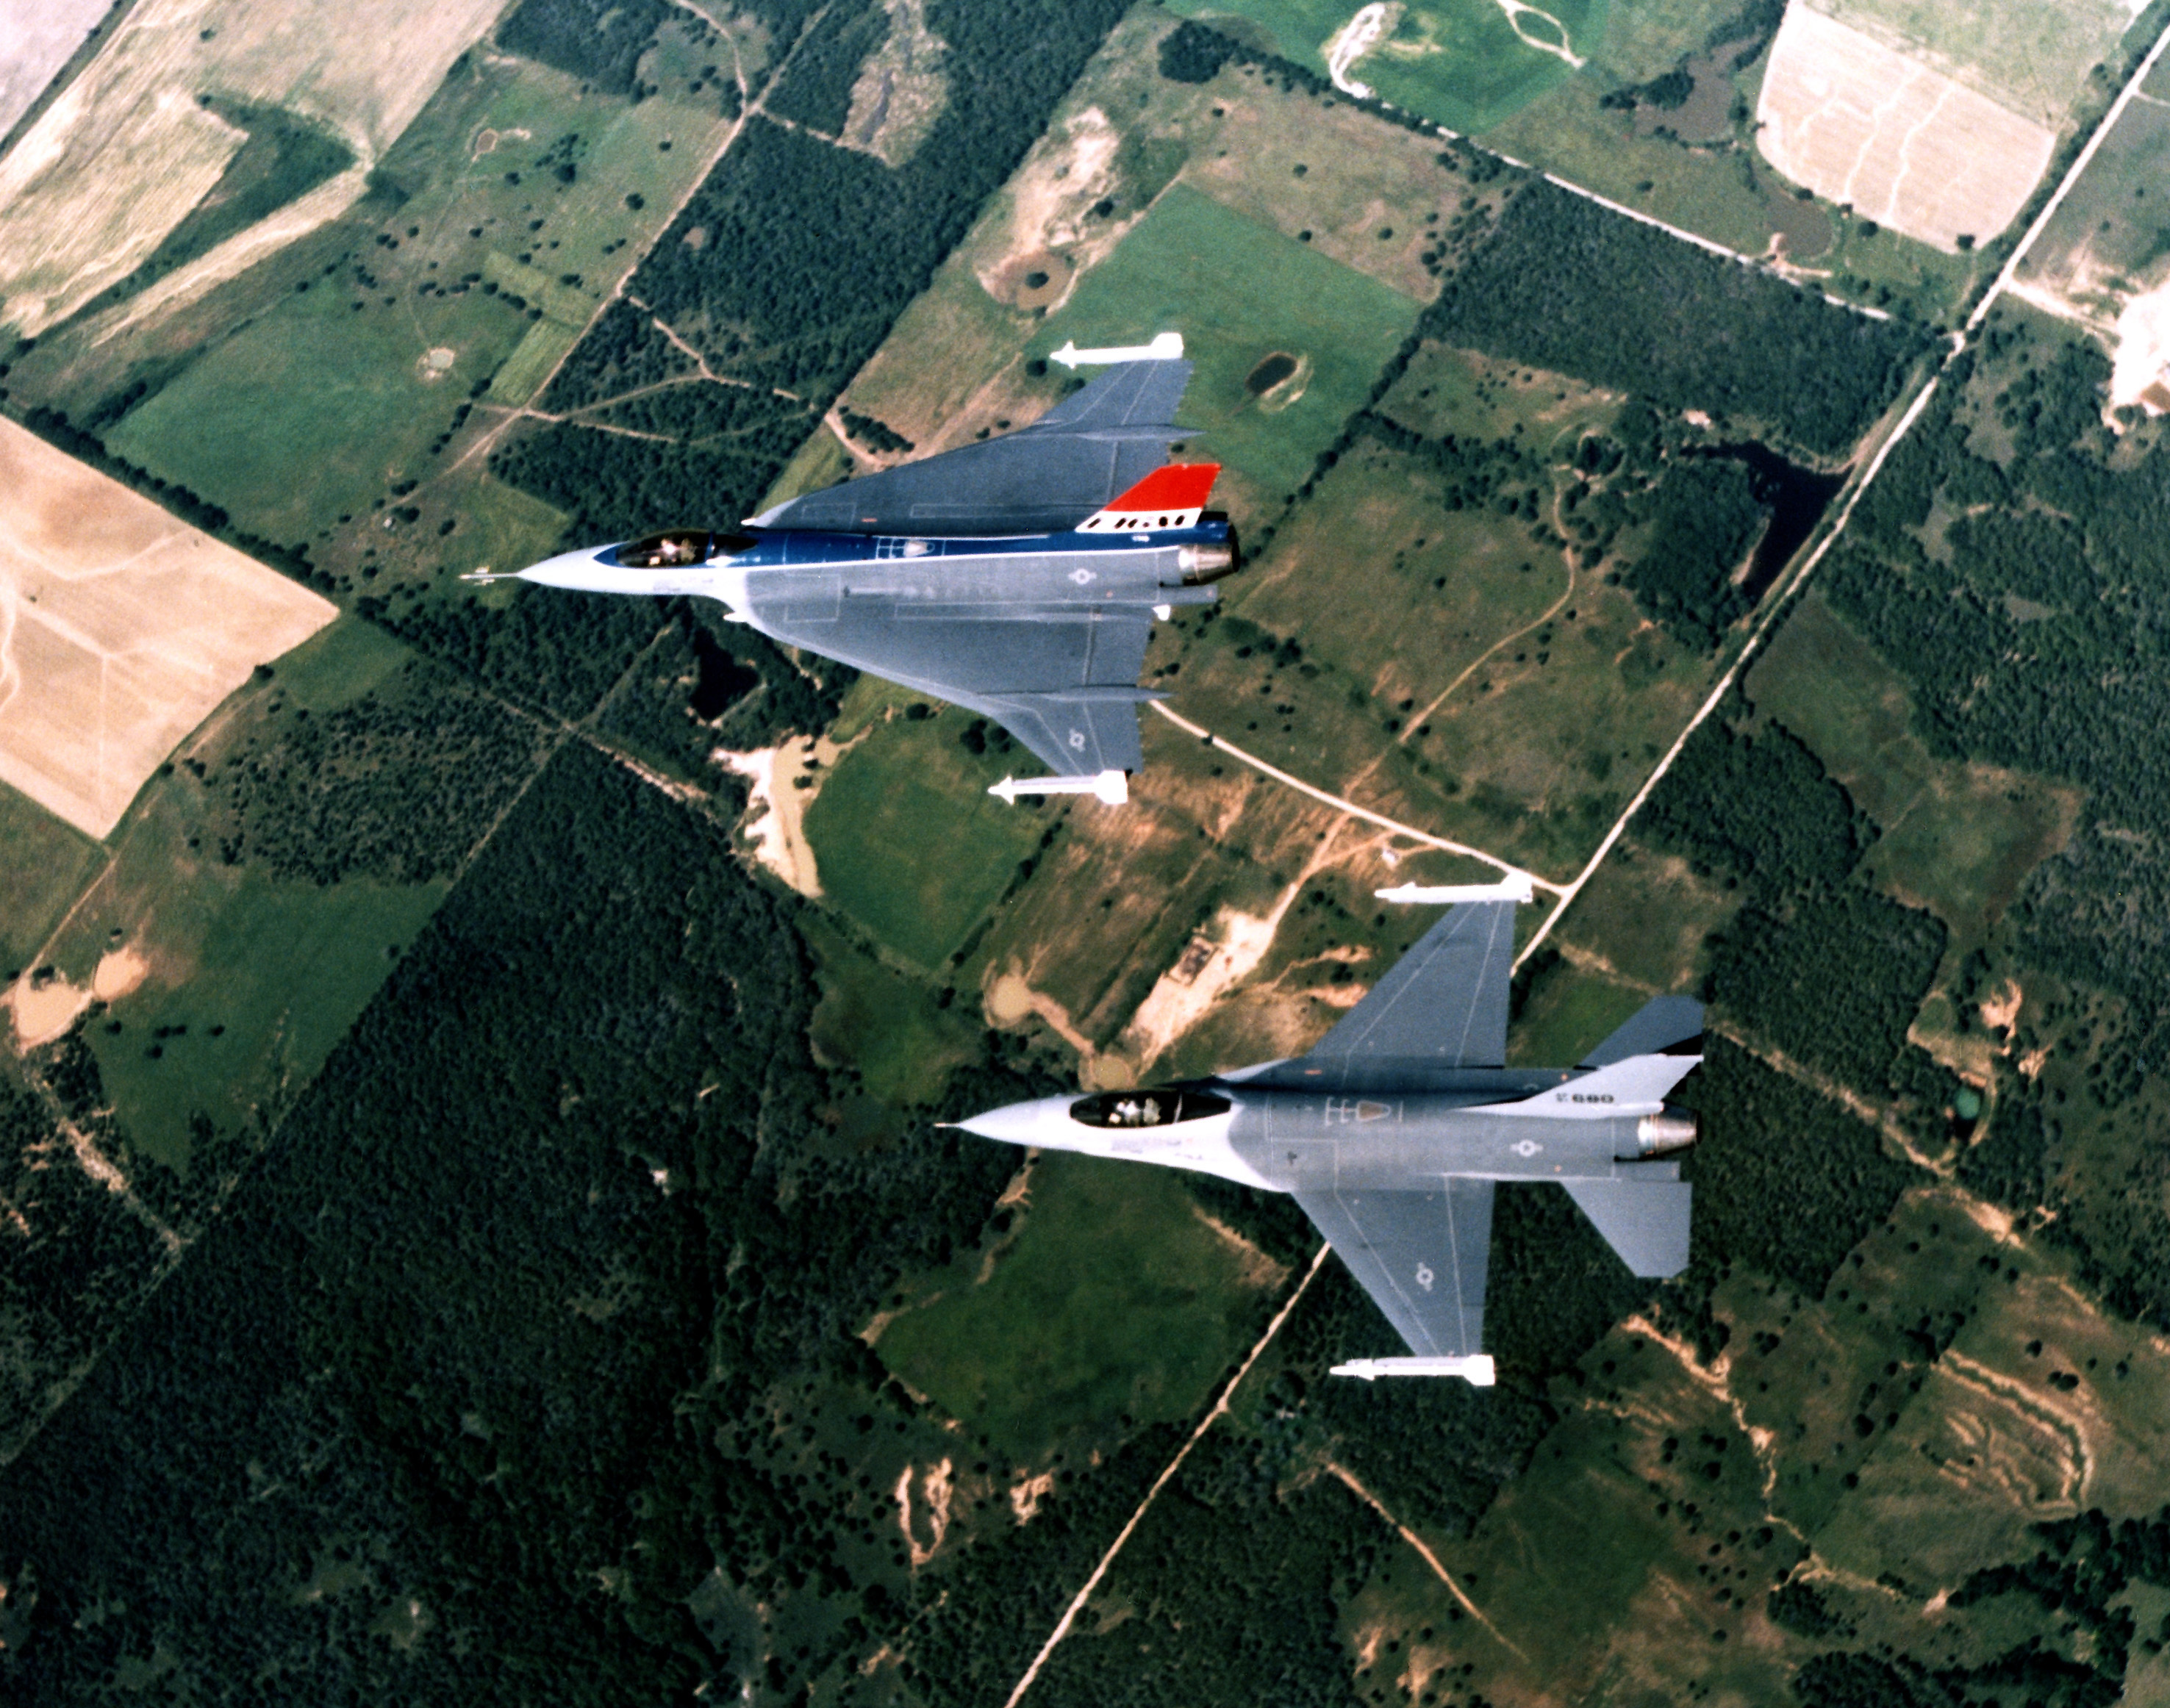 f-16_and_f-16xl_aerial_top_down_view.jpg